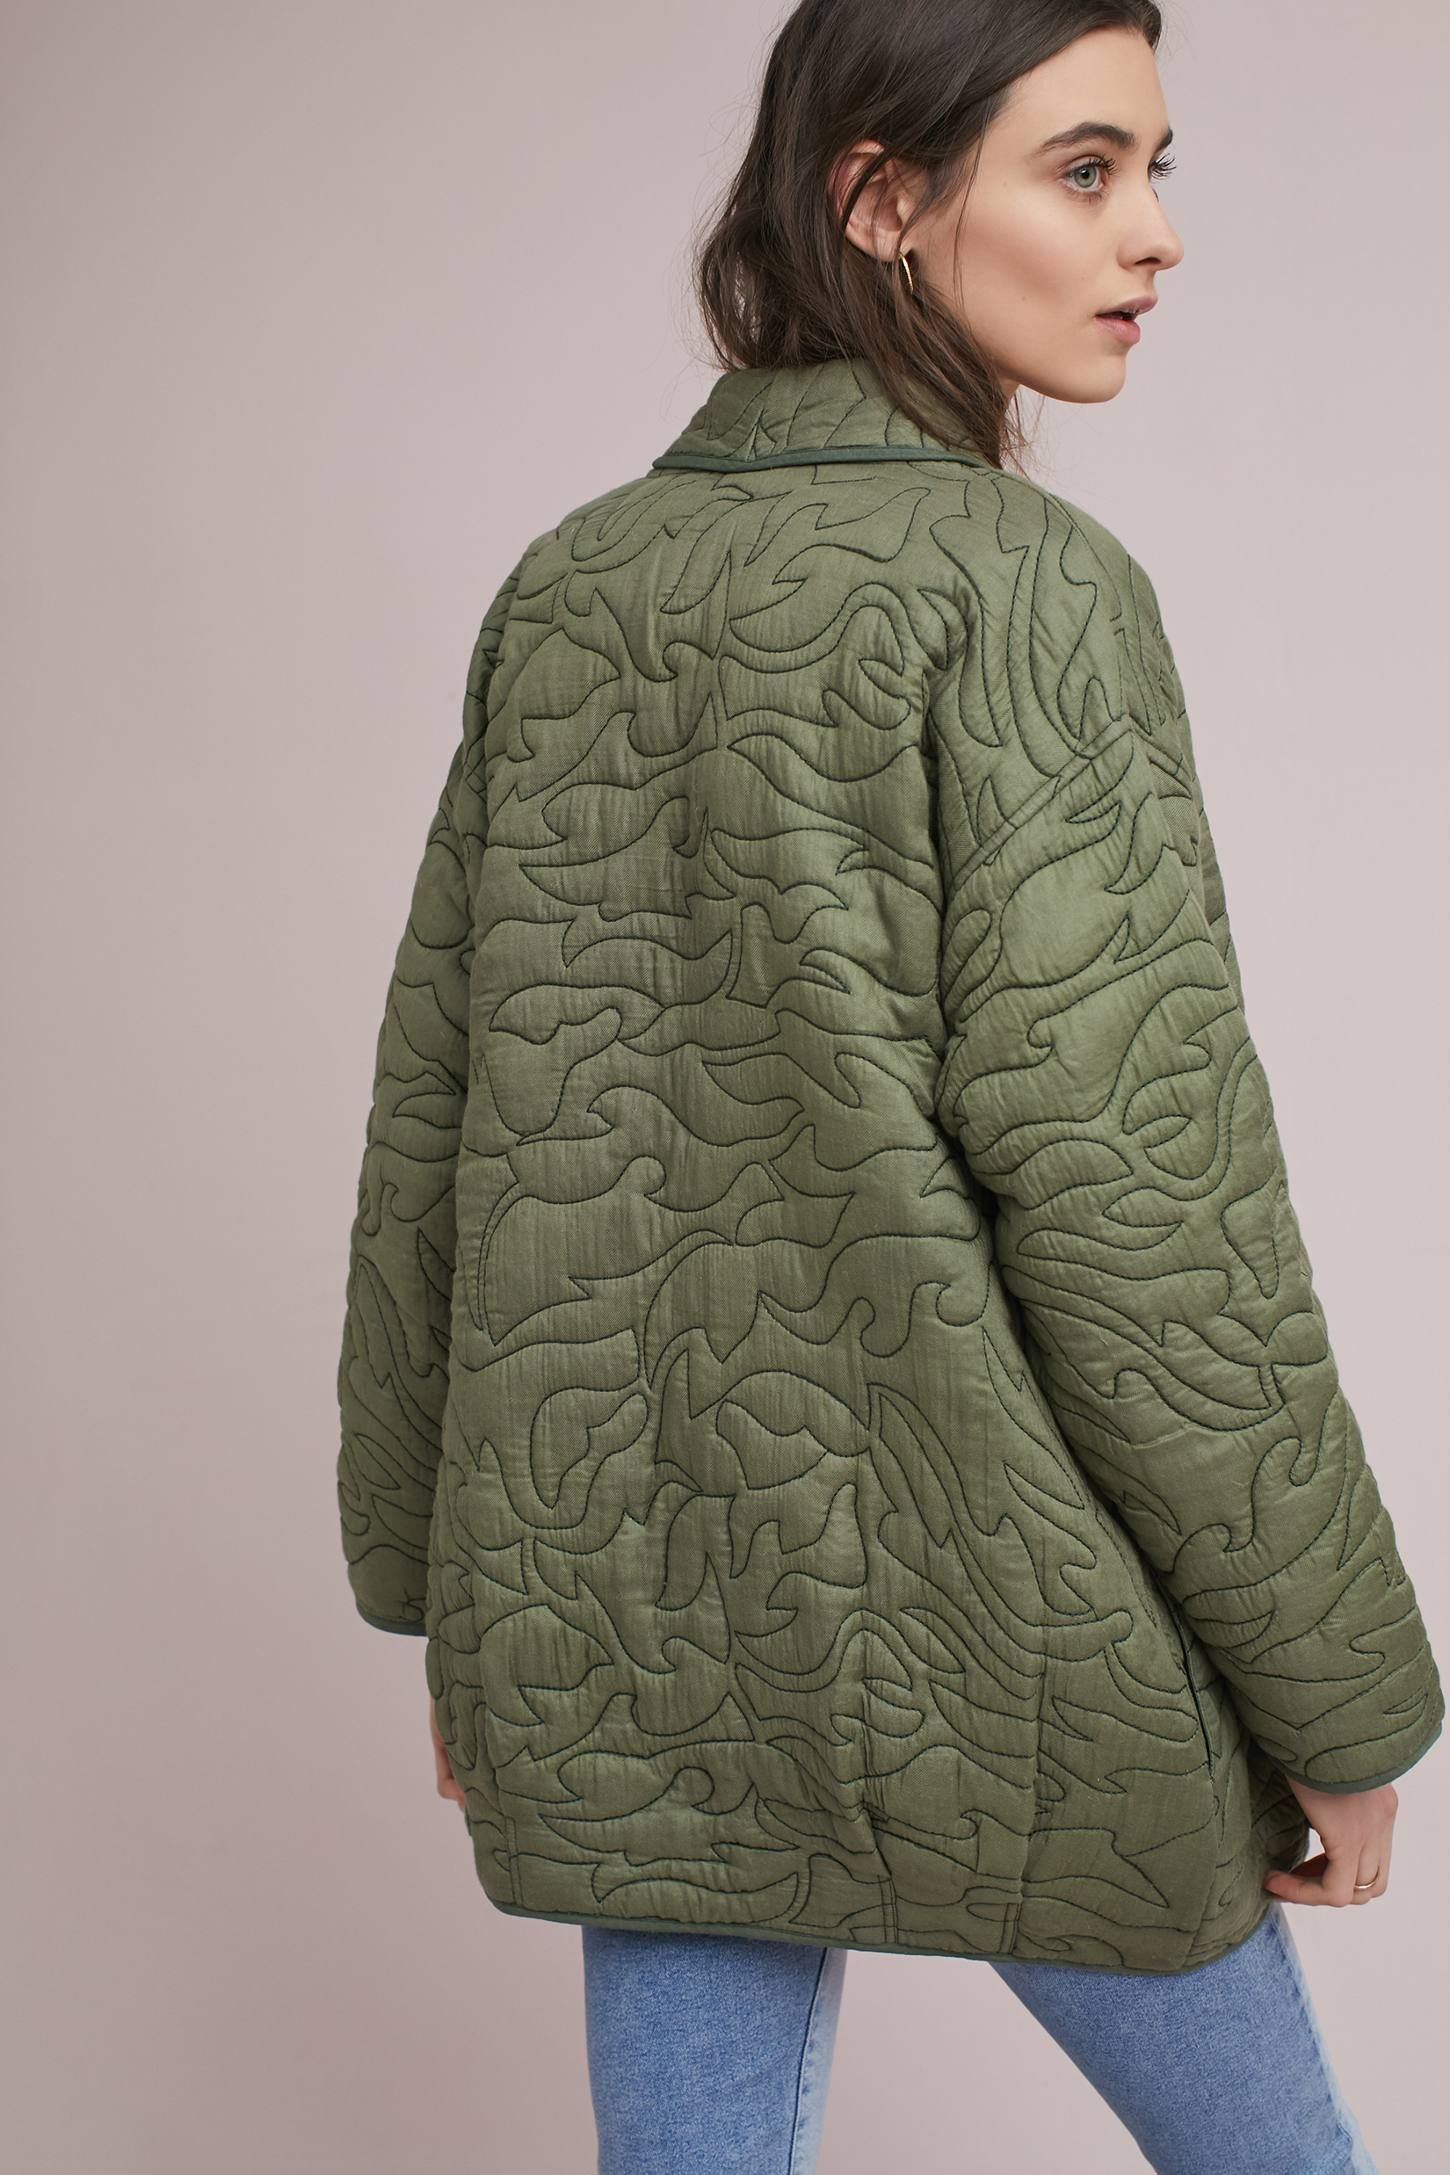 940cac008af6 Quilted Kimono Jacket